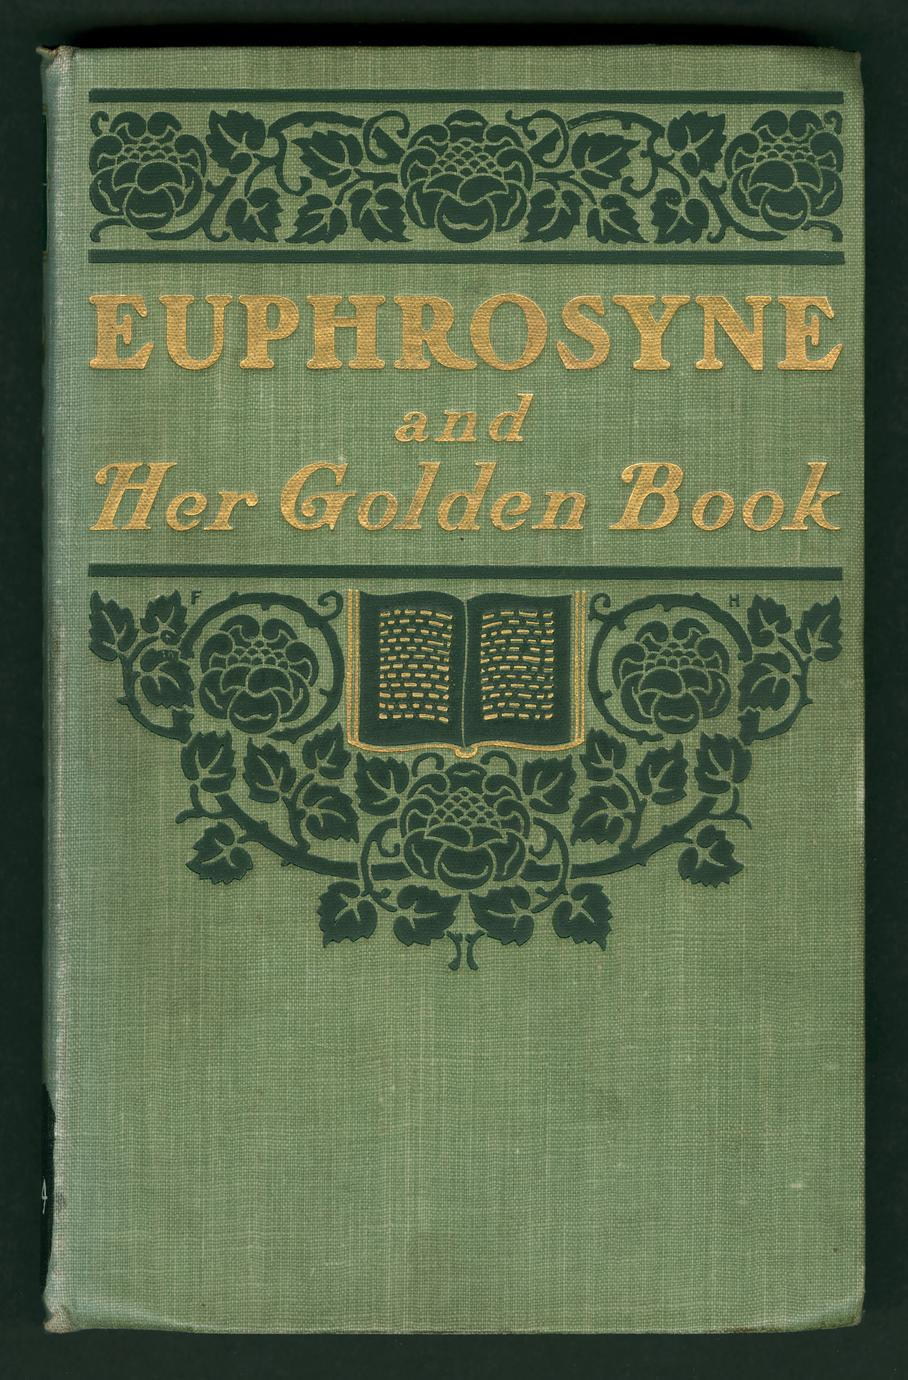 """Euphrosyne and her """"golden book"""" (1 of 4)"""